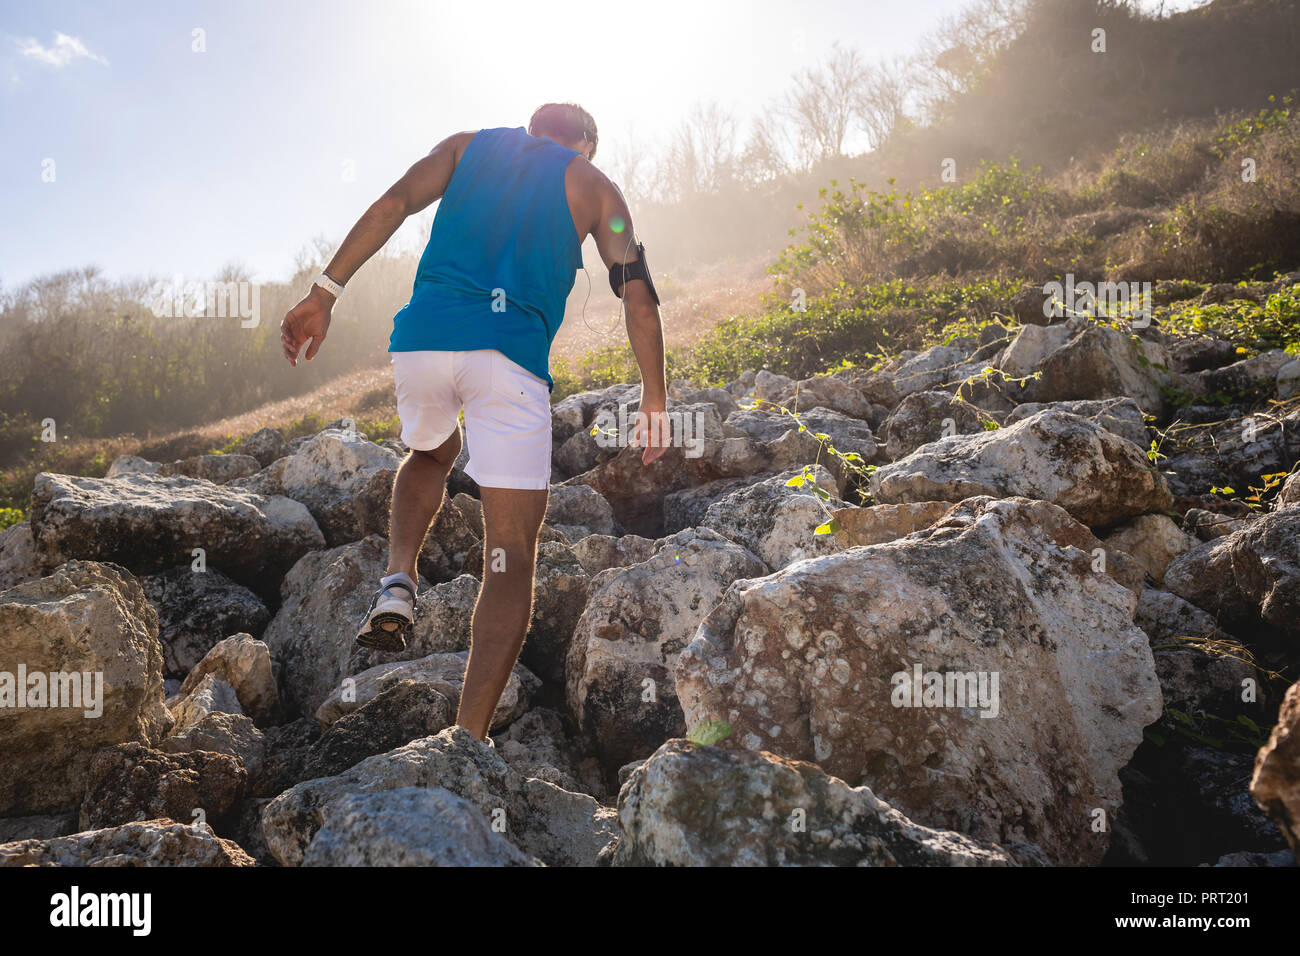 back view of athletic man climbing on rocks on mountain with back light - Stock Image